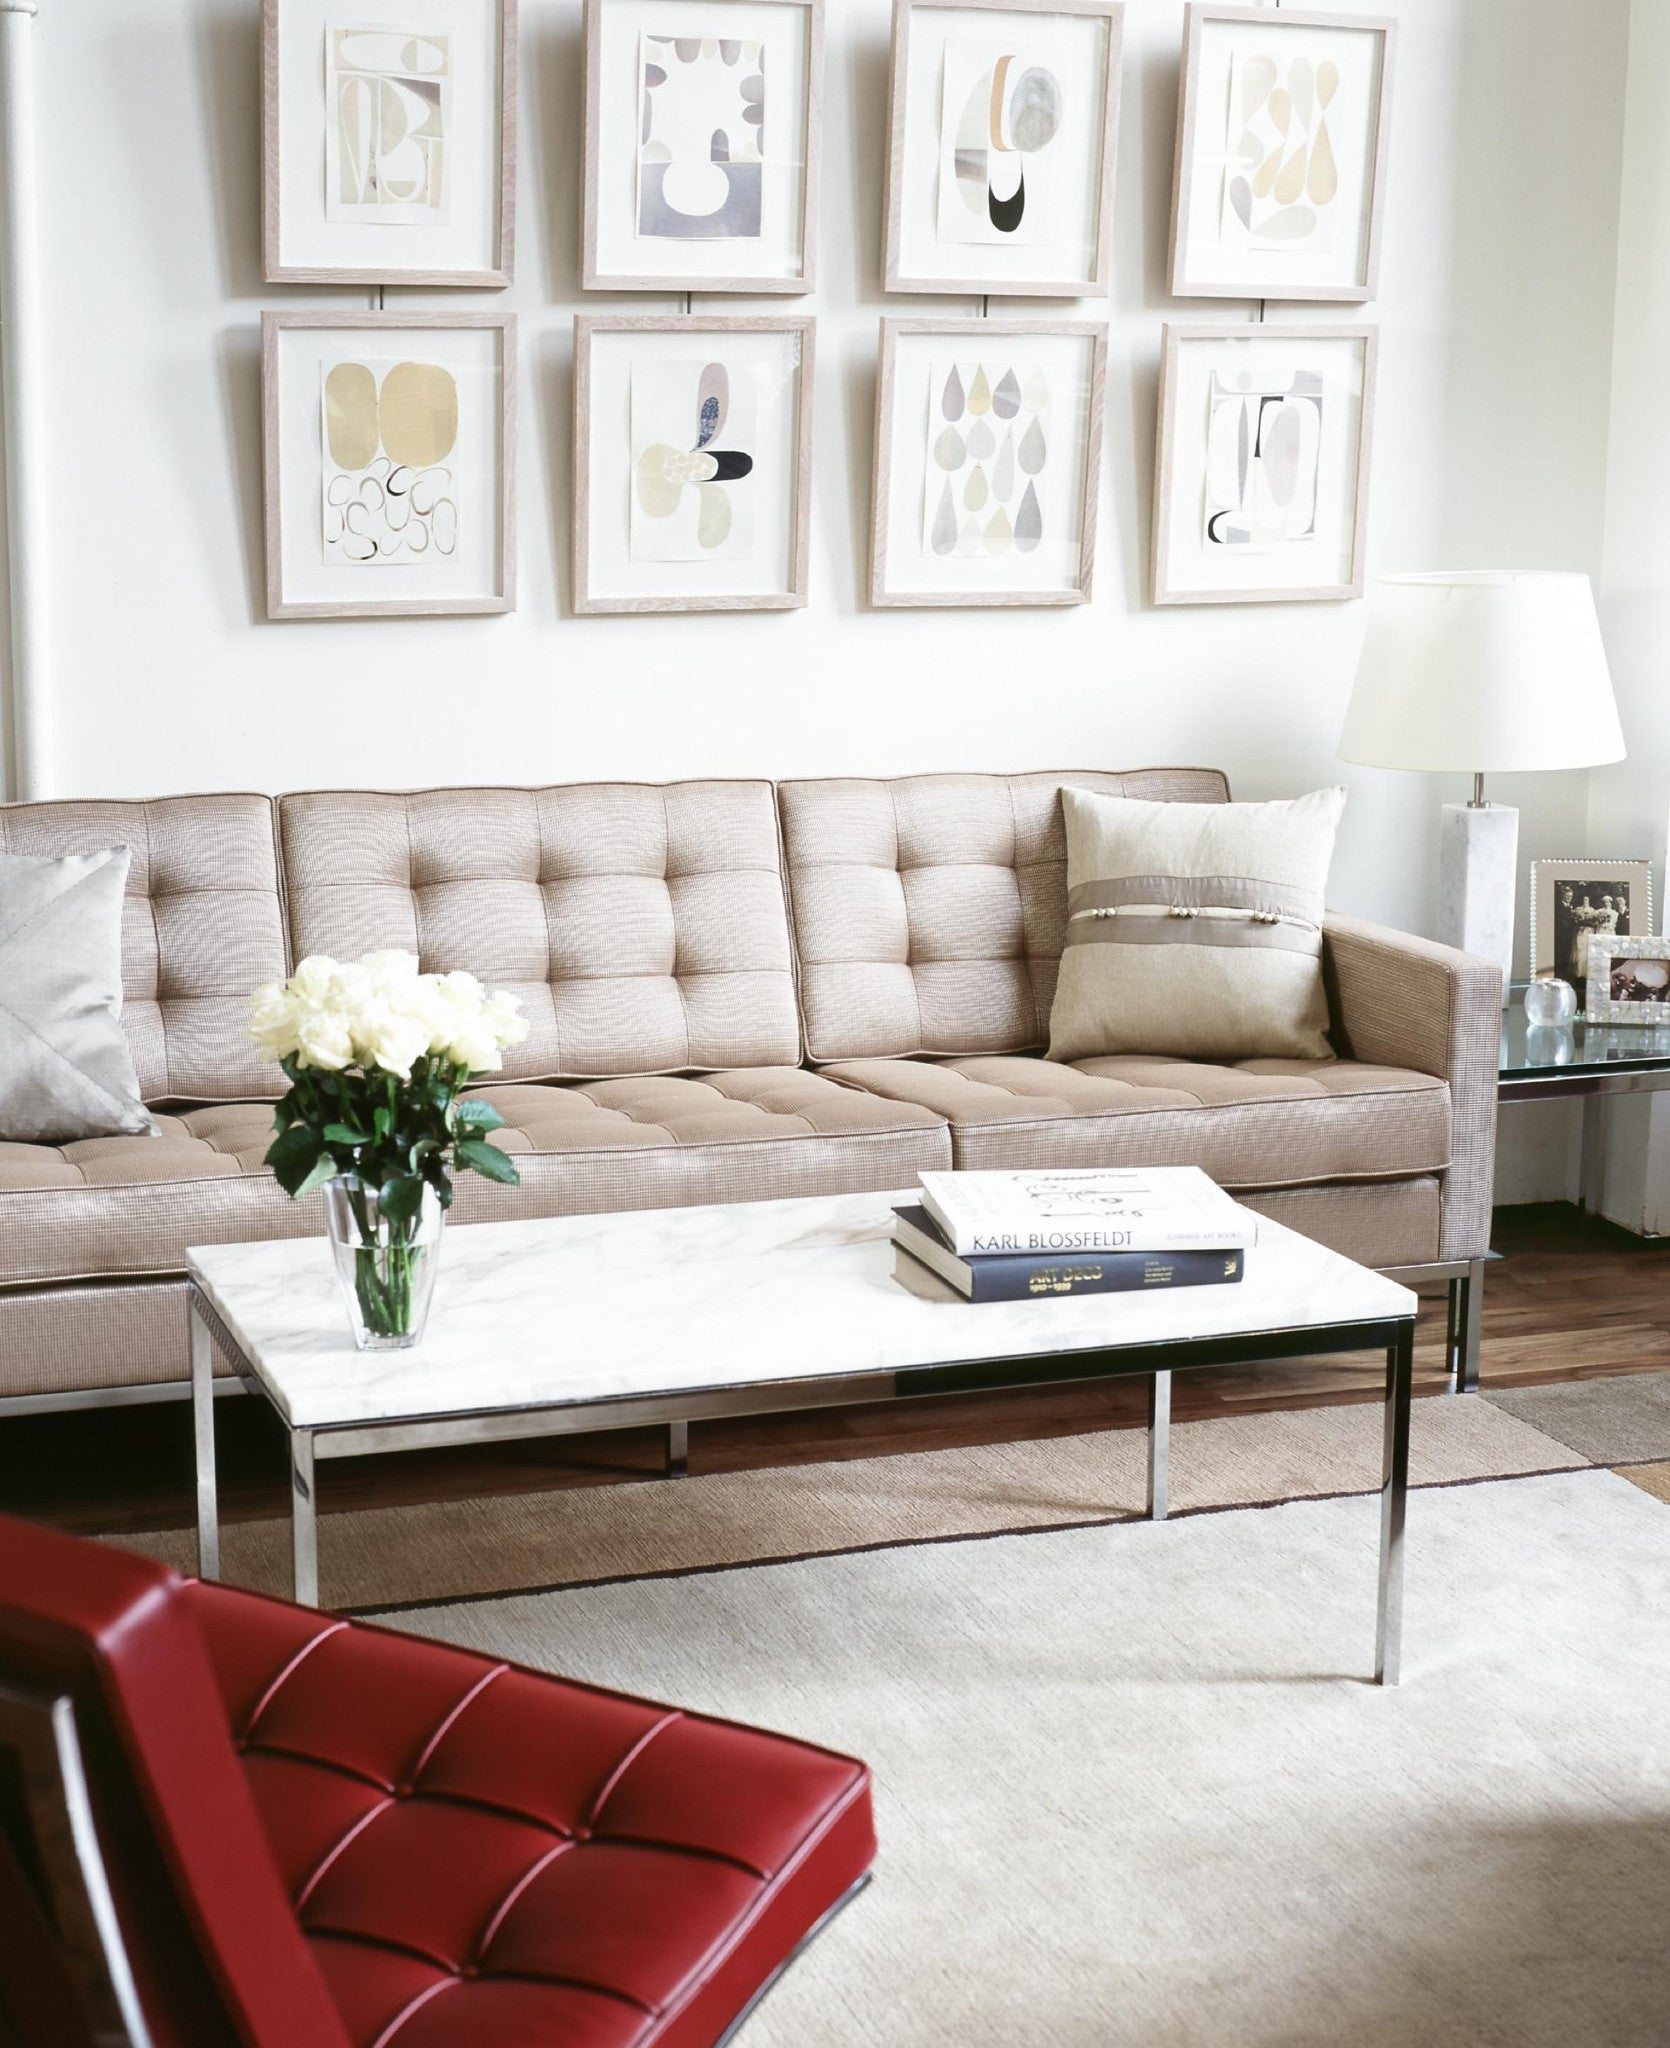 florence knoll sofa 3 seat couch potato company. Black Bedroom Furniture Sets. Home Design Ideas